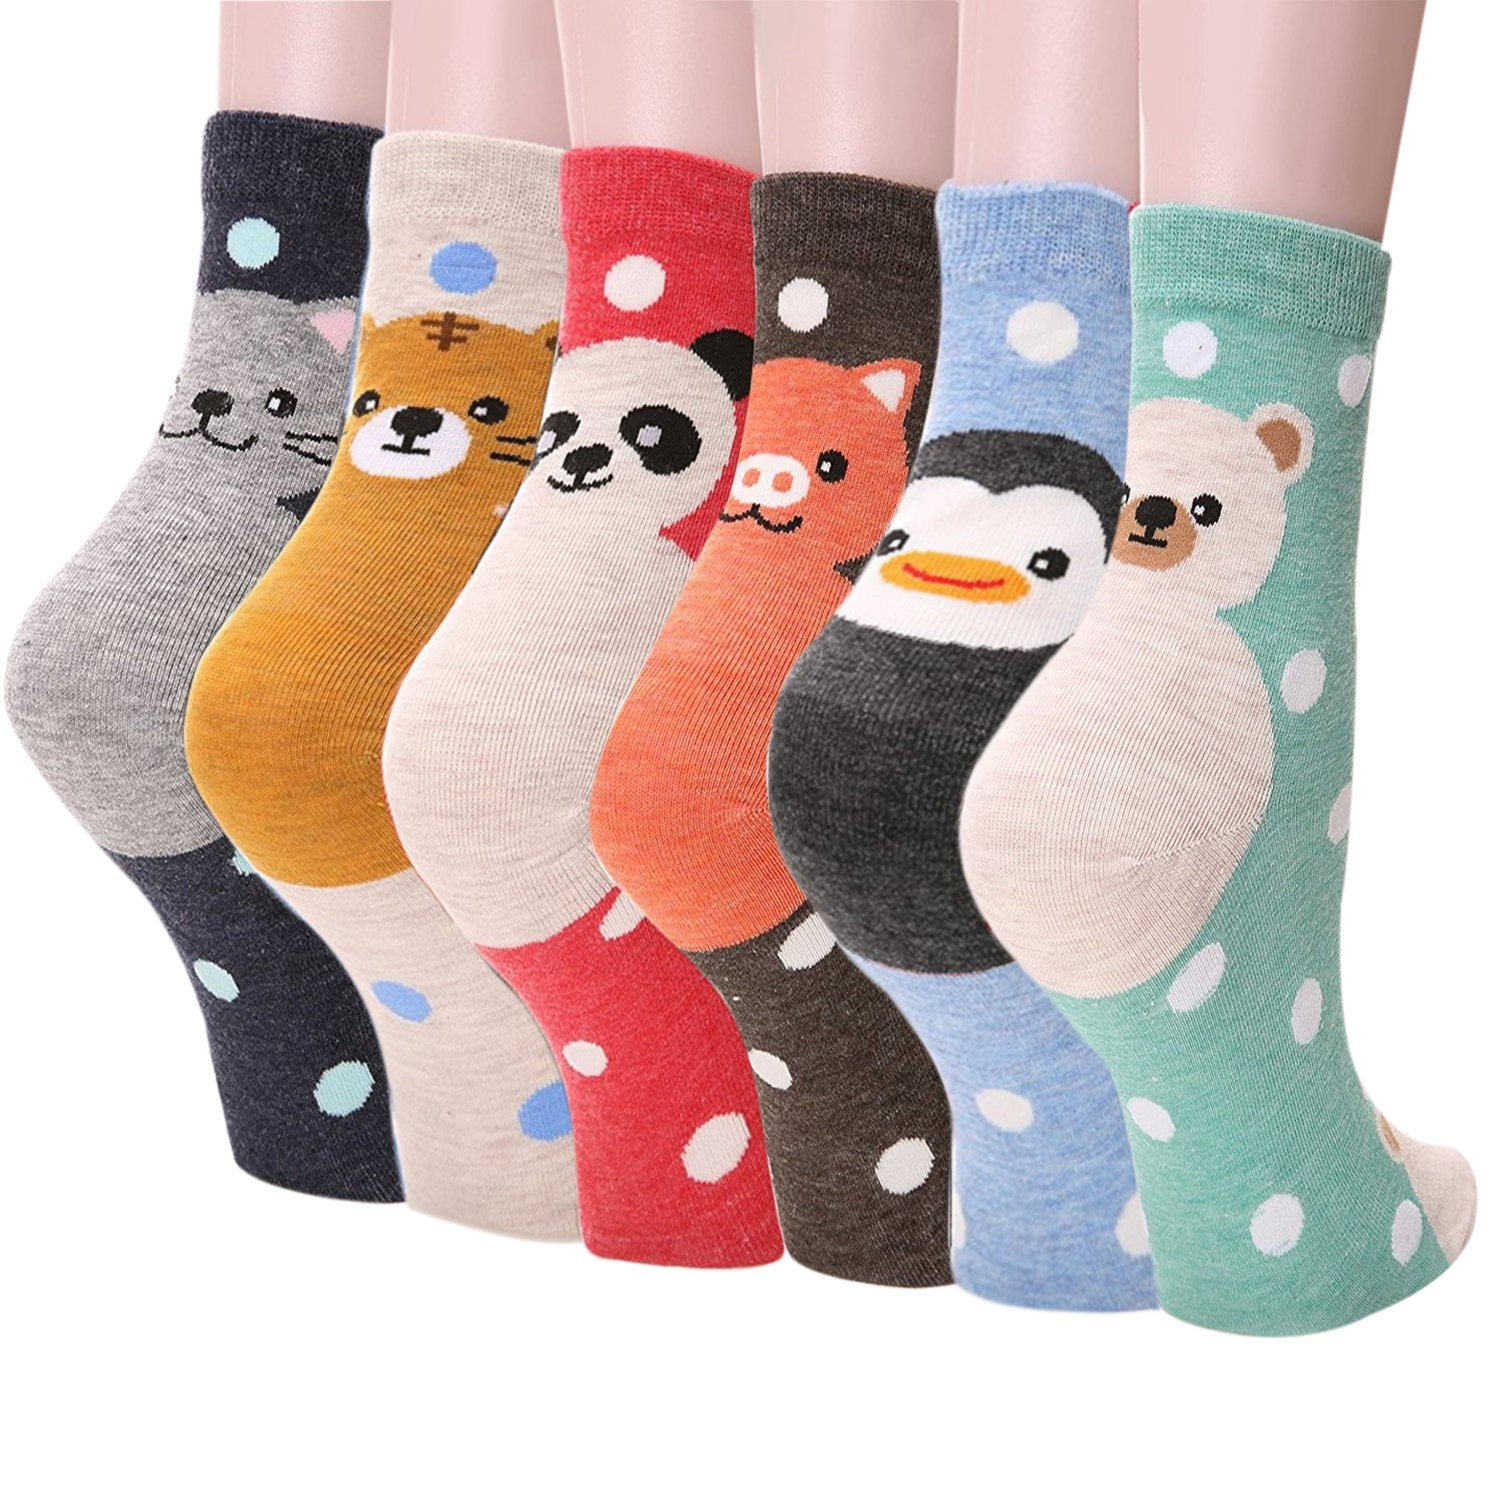 A0S0 Womens Casual Socks - Cute Crazy Lovely Anial Cats Dogs Design Goods ofr Gift One Size fits All … (Double Animal)